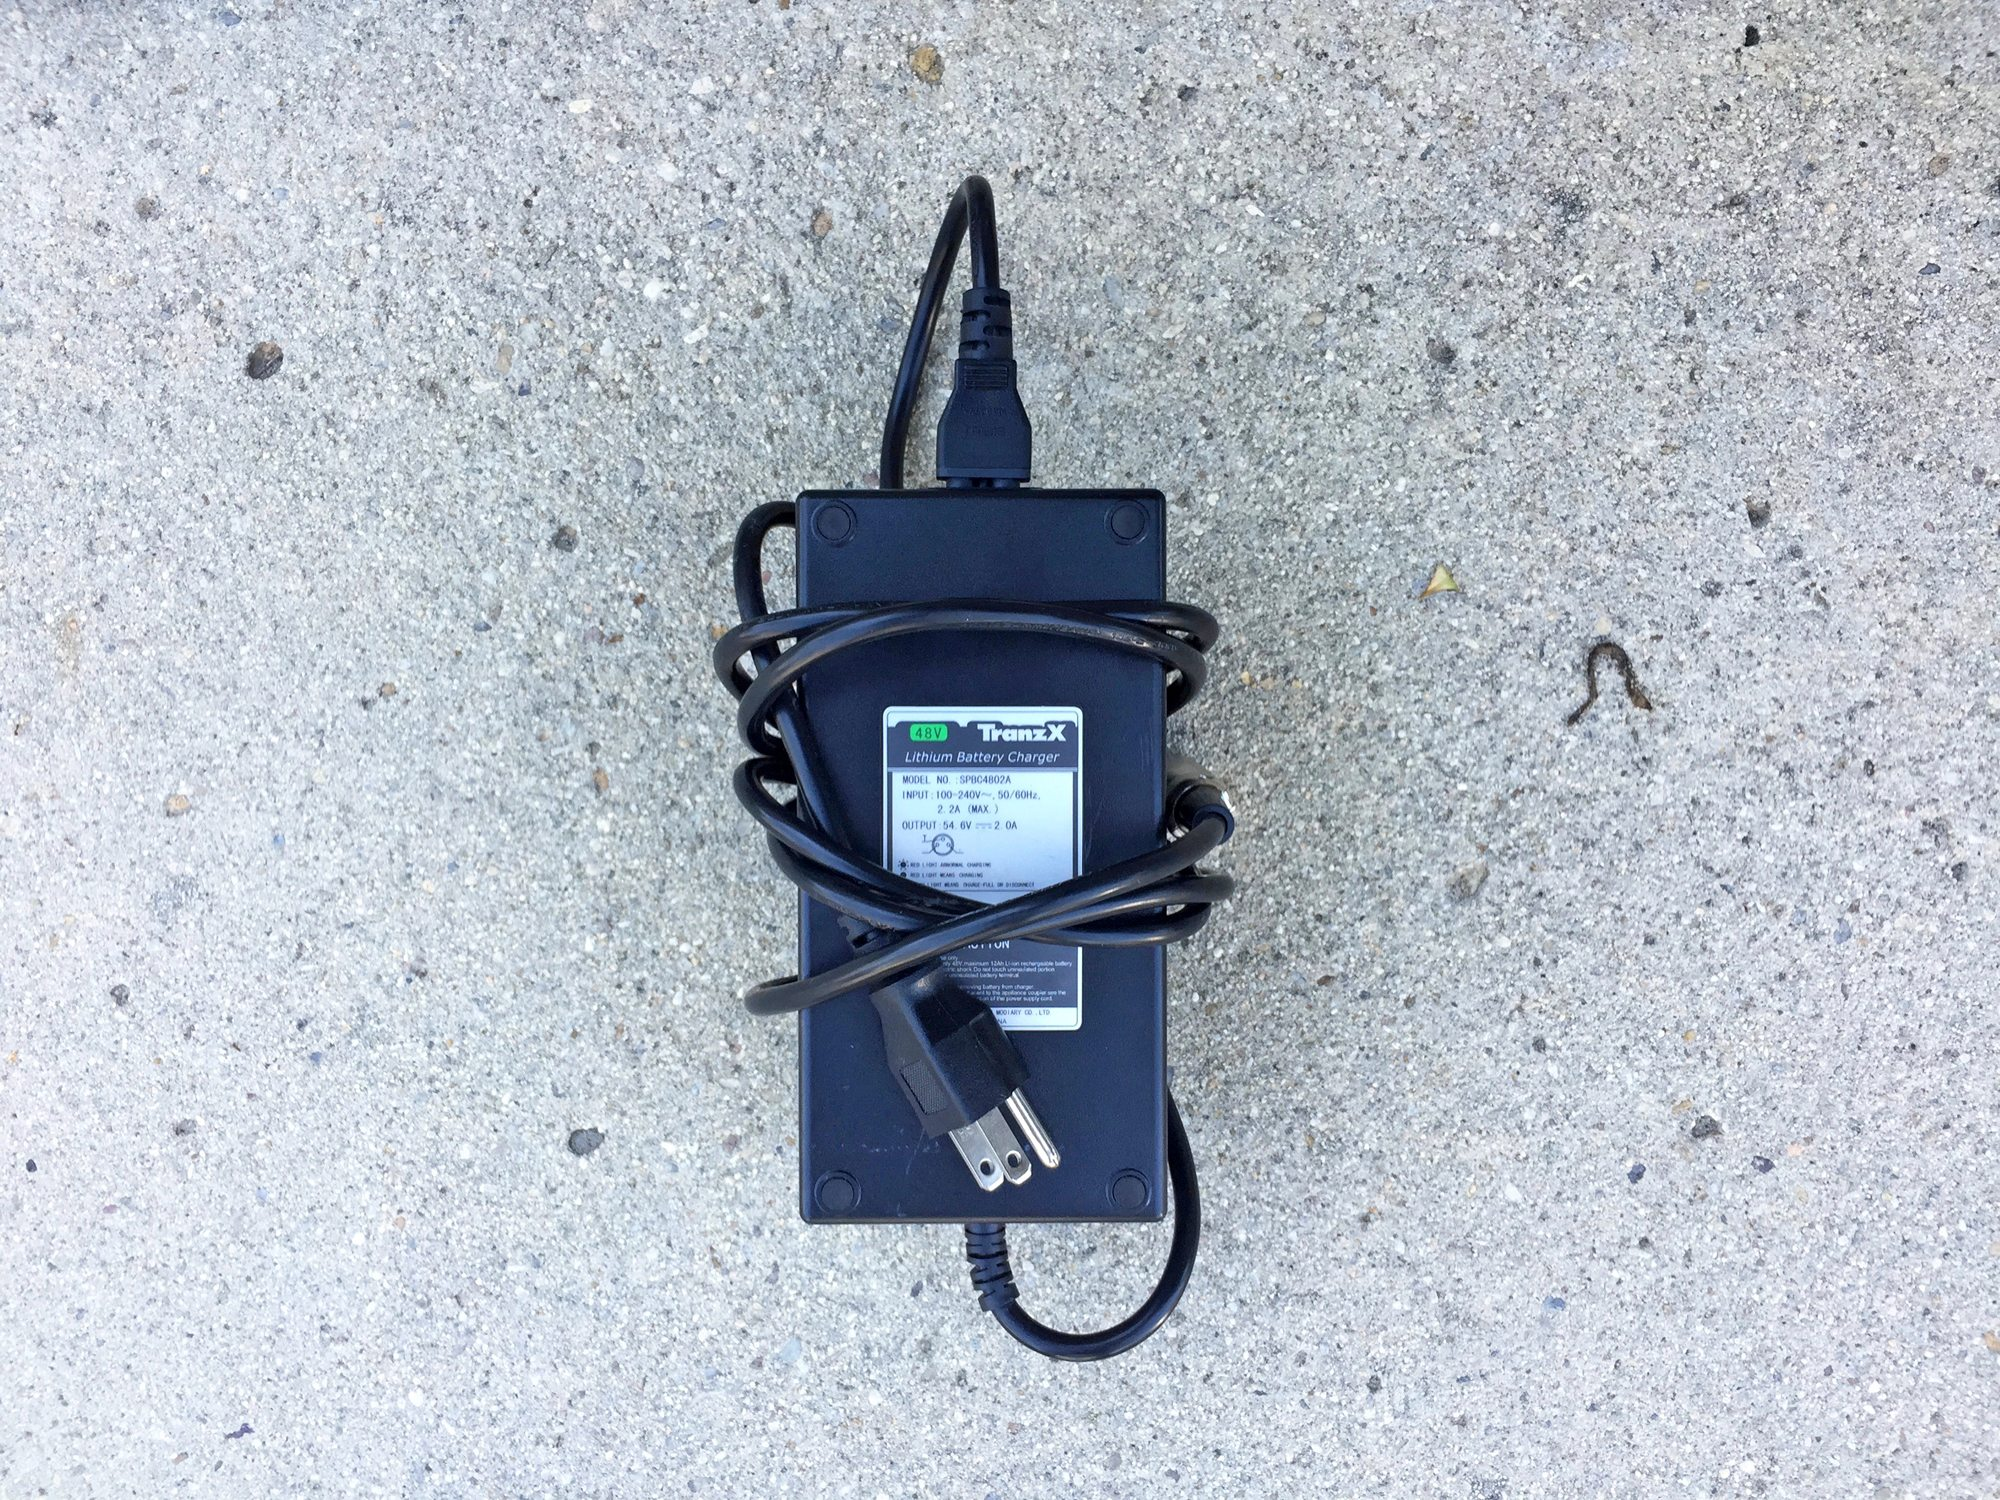 47e5215b6aa 2017 Raleigh Sprite Ie 2 Amp Electric Bike Battery Charger. 2017 ...